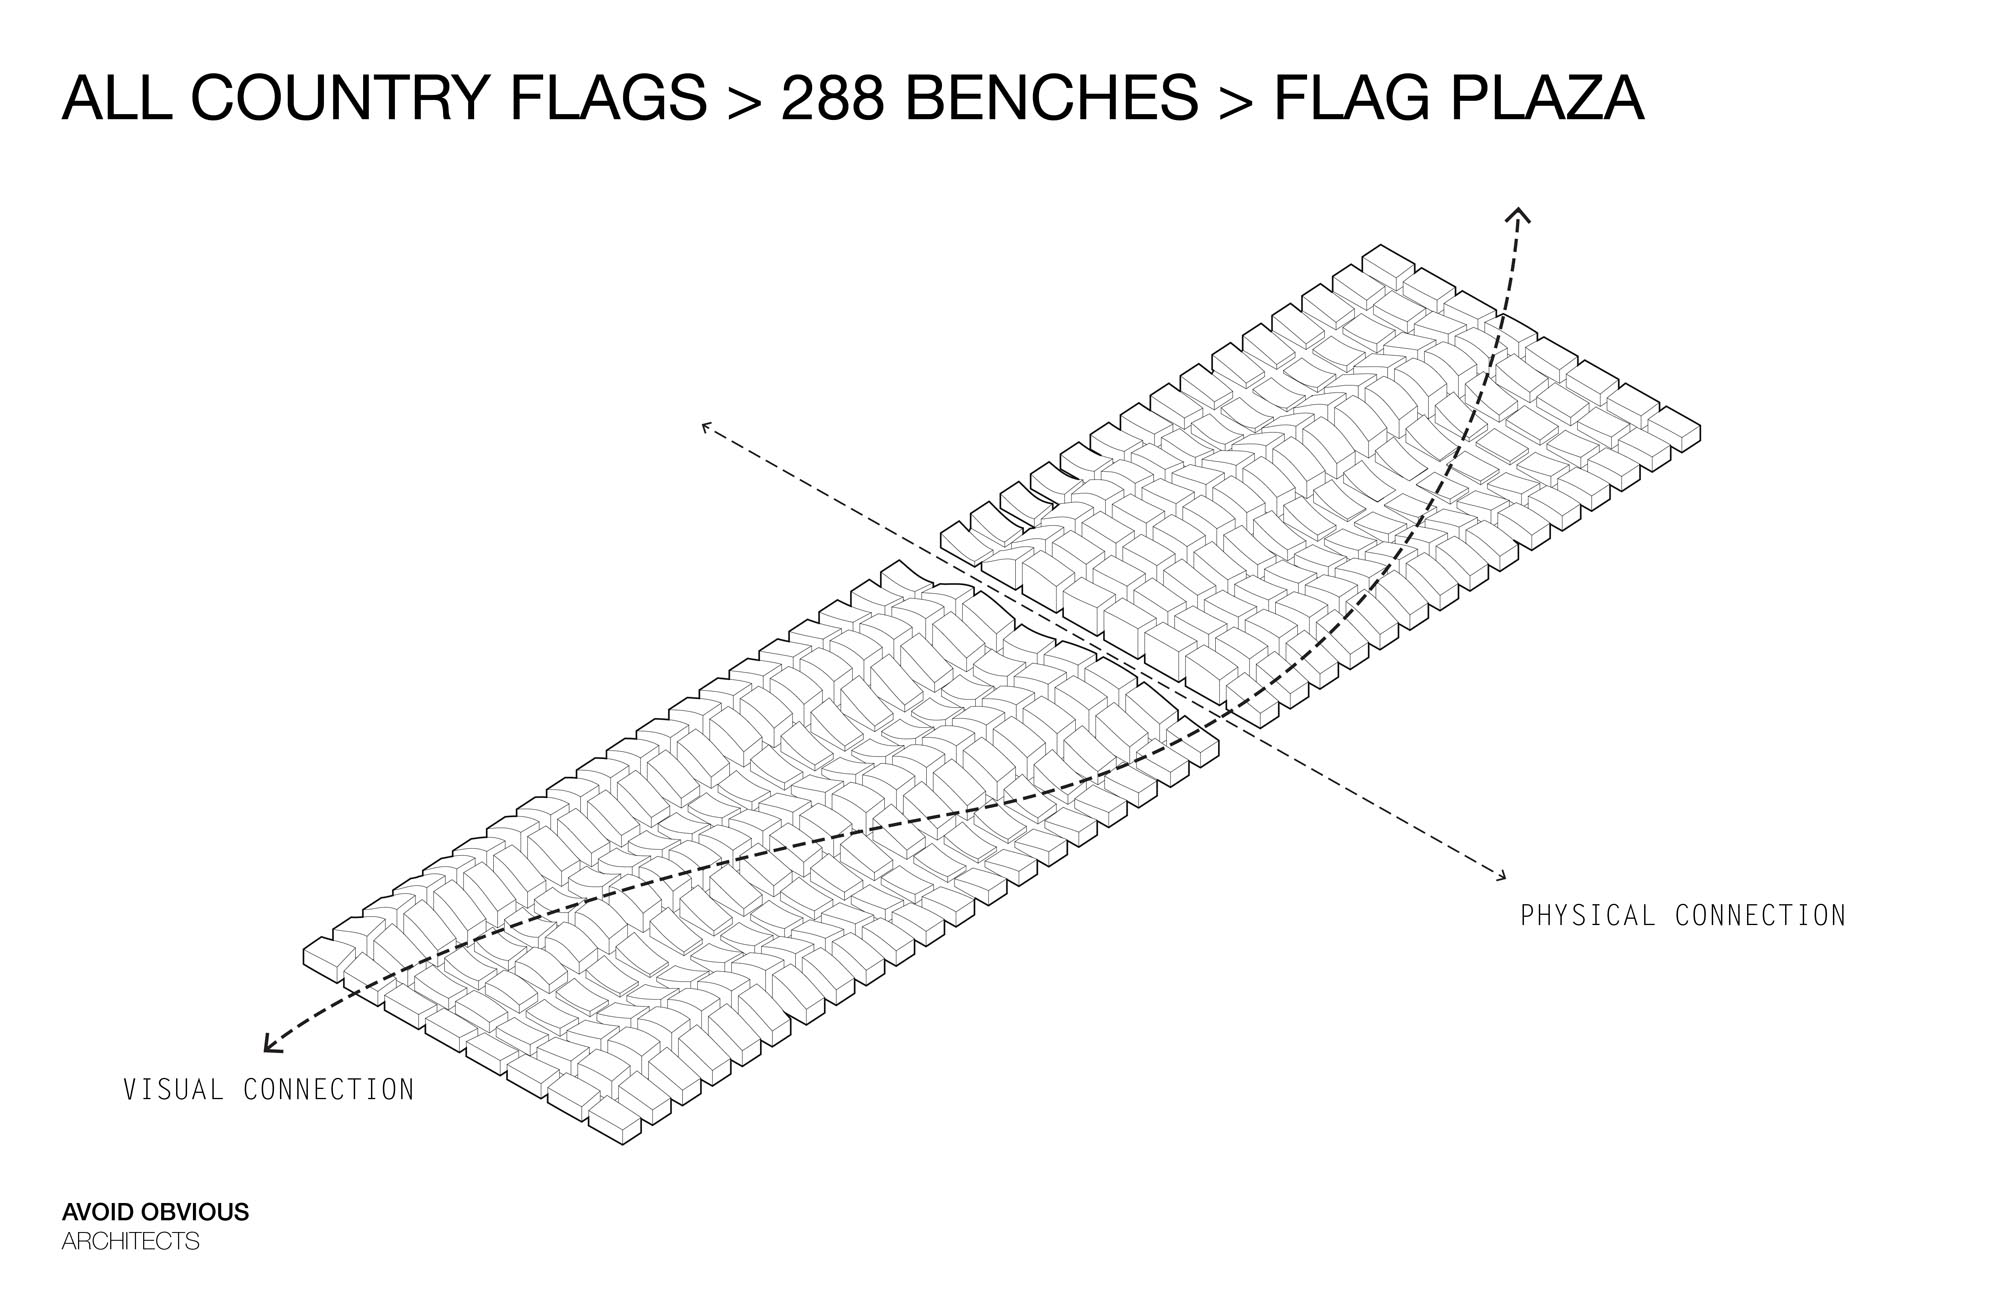 Flags, International, Avoid Obvious, UN, United Nations, Olypmics, Plaza, Benches, 2d, 3d, wood, wave, sustainable, architecture, furniture